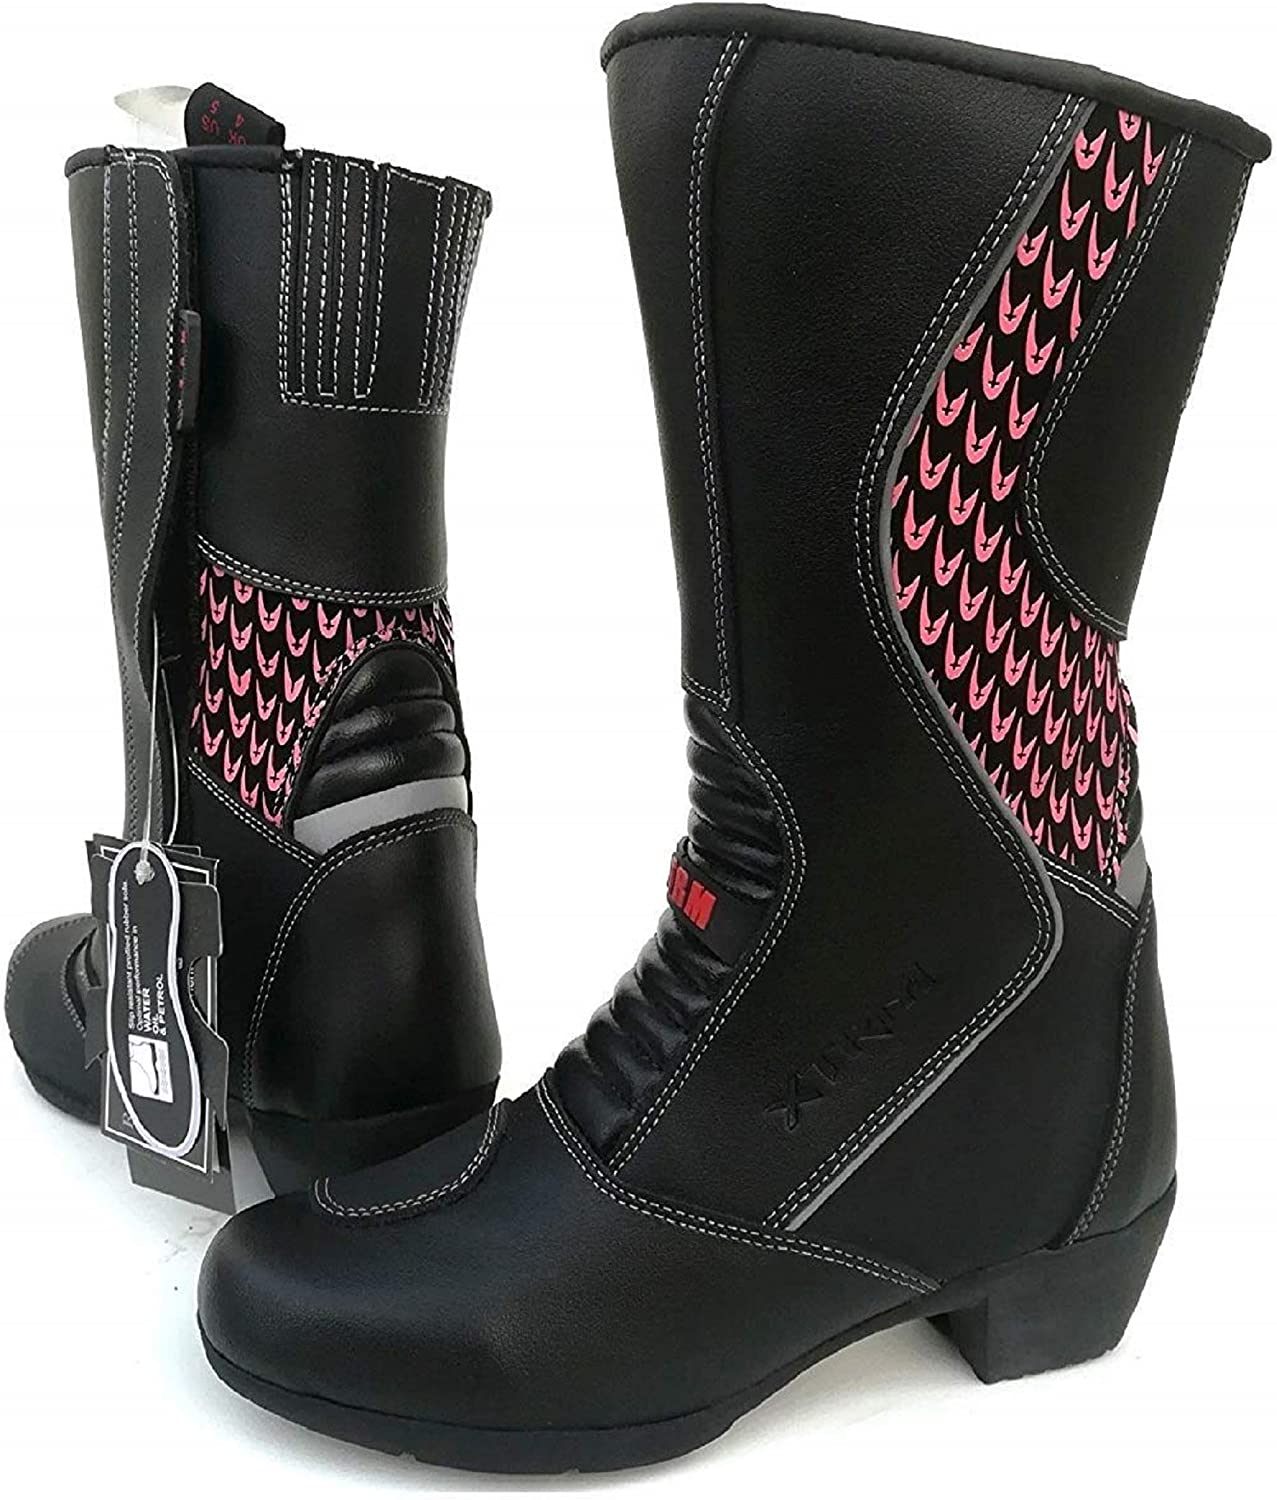 XTRM Motorbike Ladies Boots 601 Womens Motorcycle Touring Riding Long Boots With Heel Black